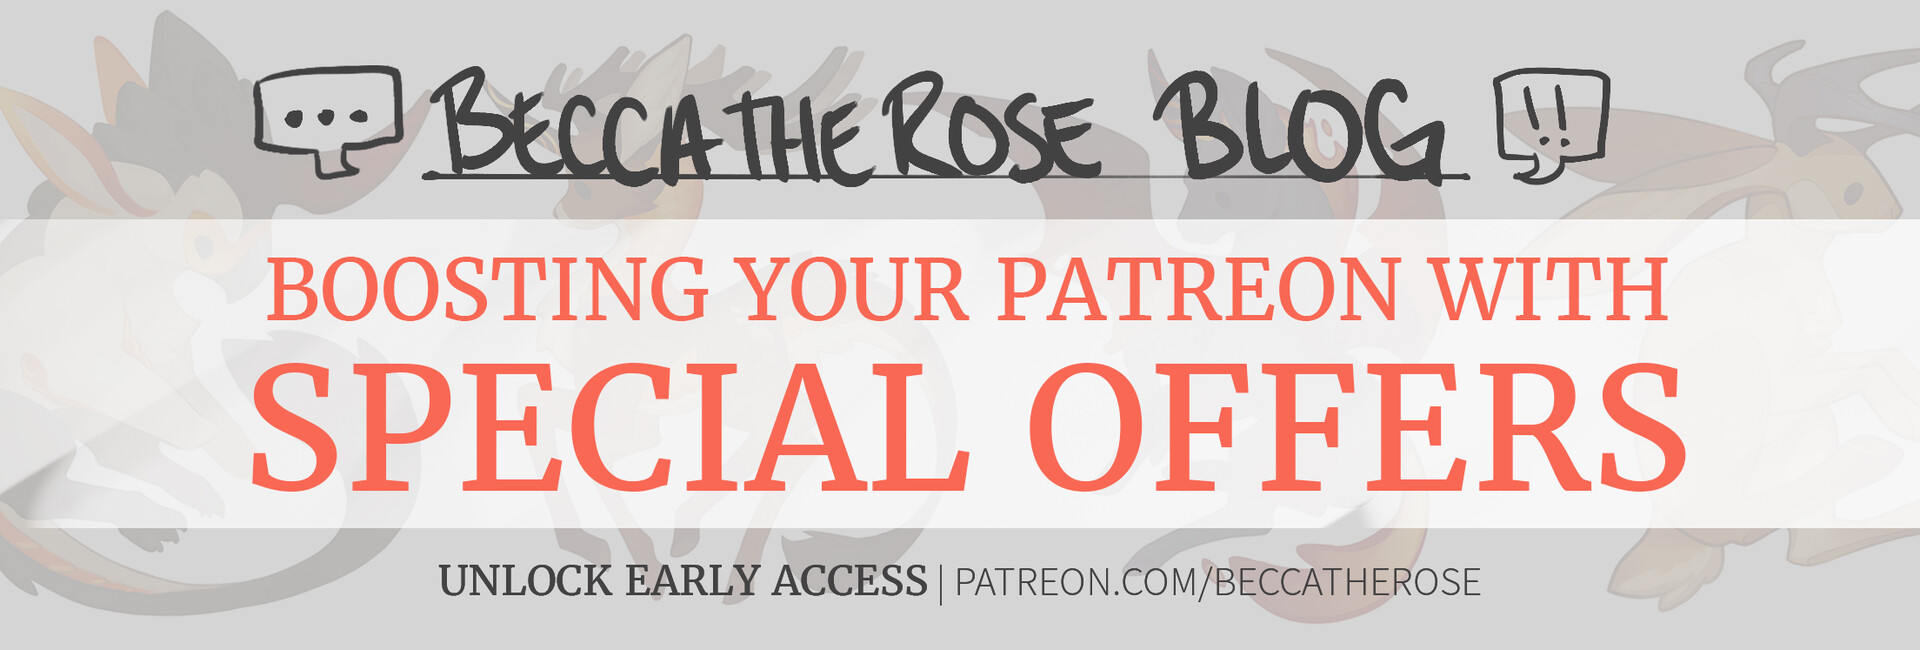 ArtStation - Becca Hallstedt - Boosting Your Patreon with Special Offers